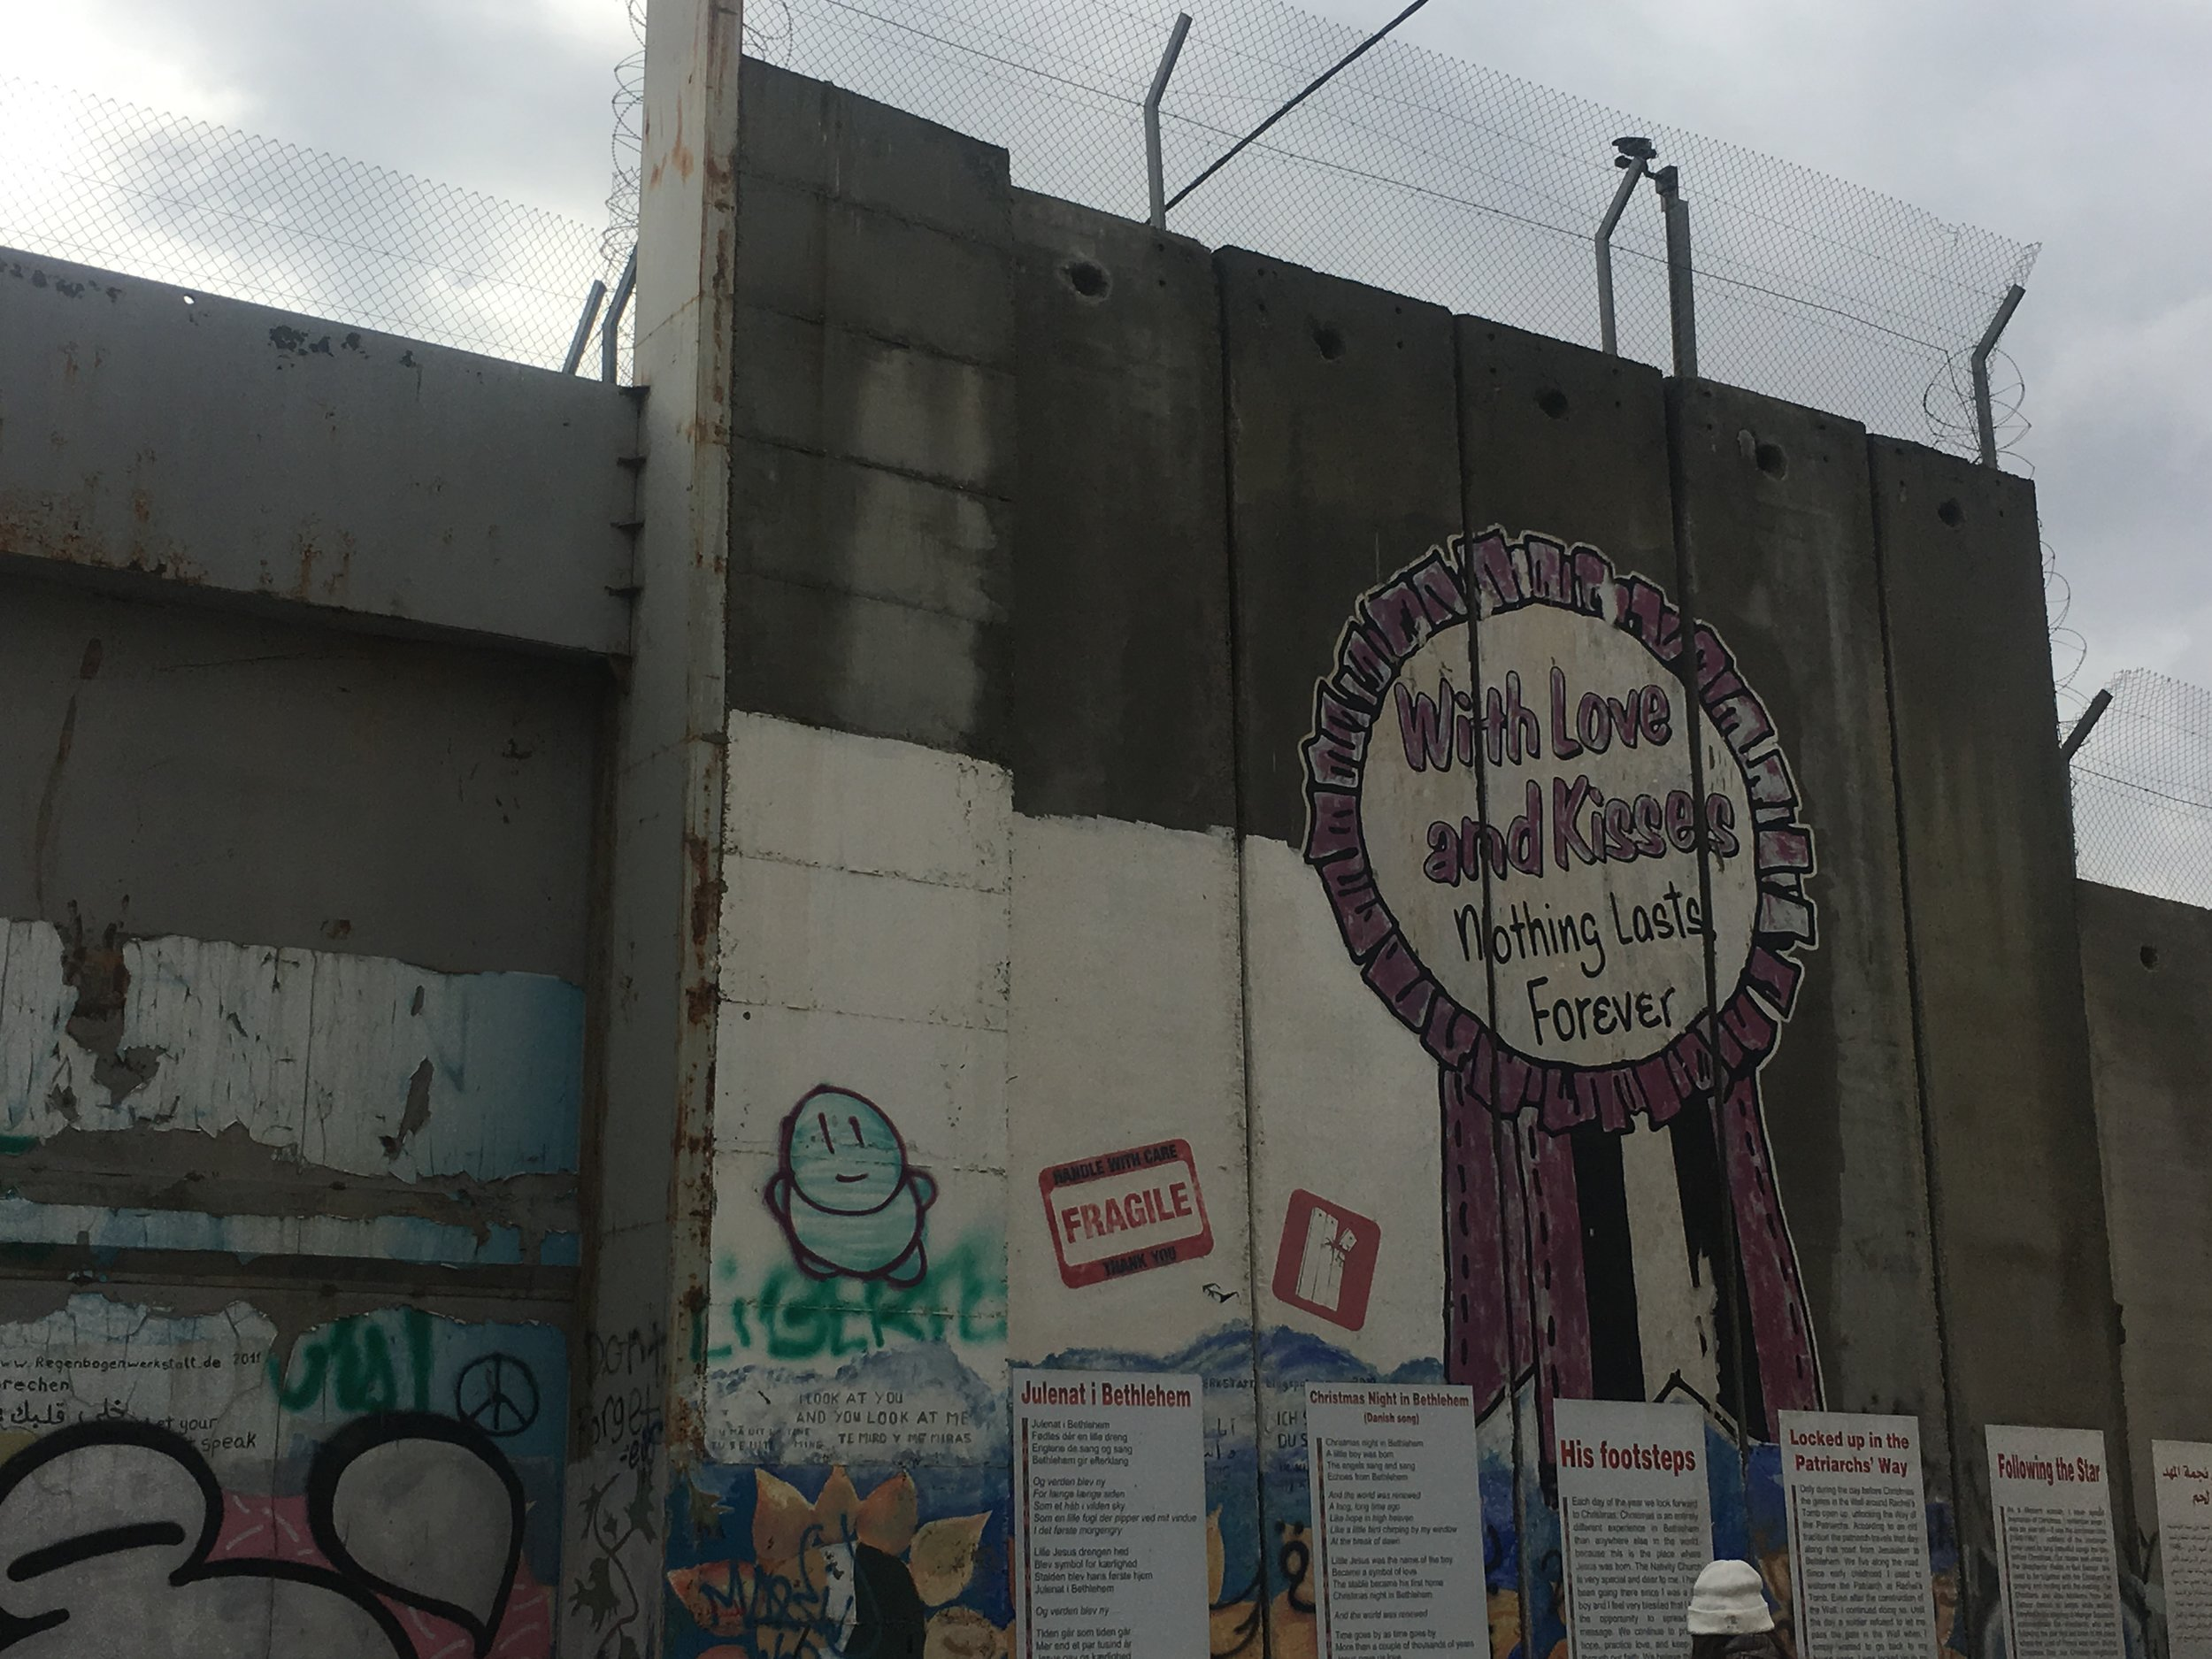 """Separation wall art. Bethlehem, West Bank. """"With love and kisses nothing lasts forever."""""""